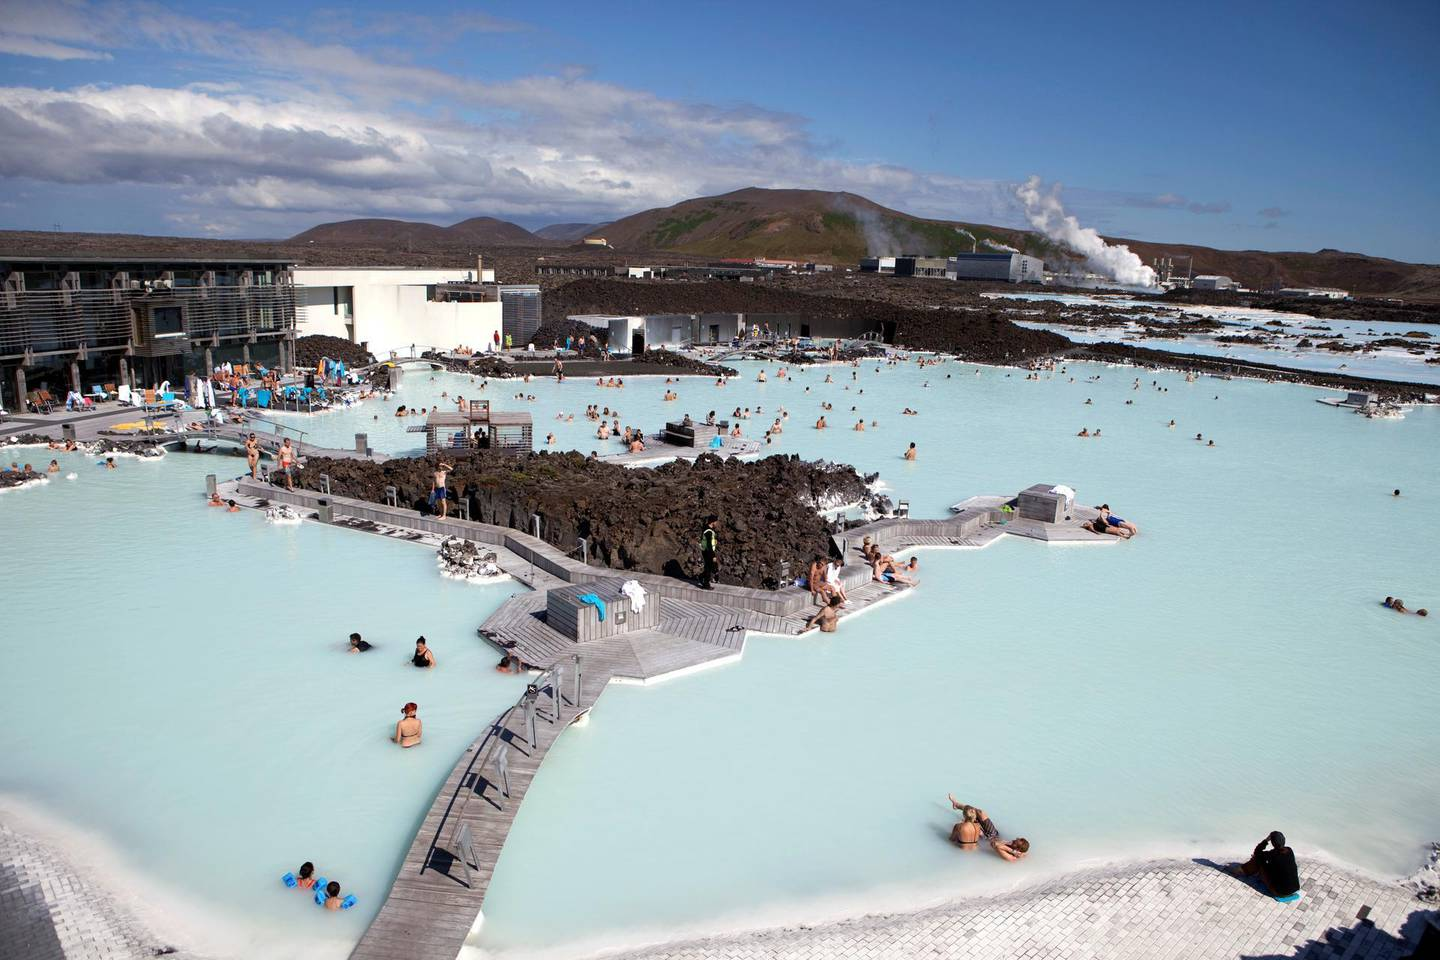 Looking down at locals and tourists in the thermal pools at the Blue Lagoon Spa just outside of Reykjavik, Iceland. Iceland is one of the most isolated countries at the world and has been drawing adventure tourists for years and continues to be one of the most visually stunning places in the world. (Photo by Ryan Pyle/Corbis via Getty Images)